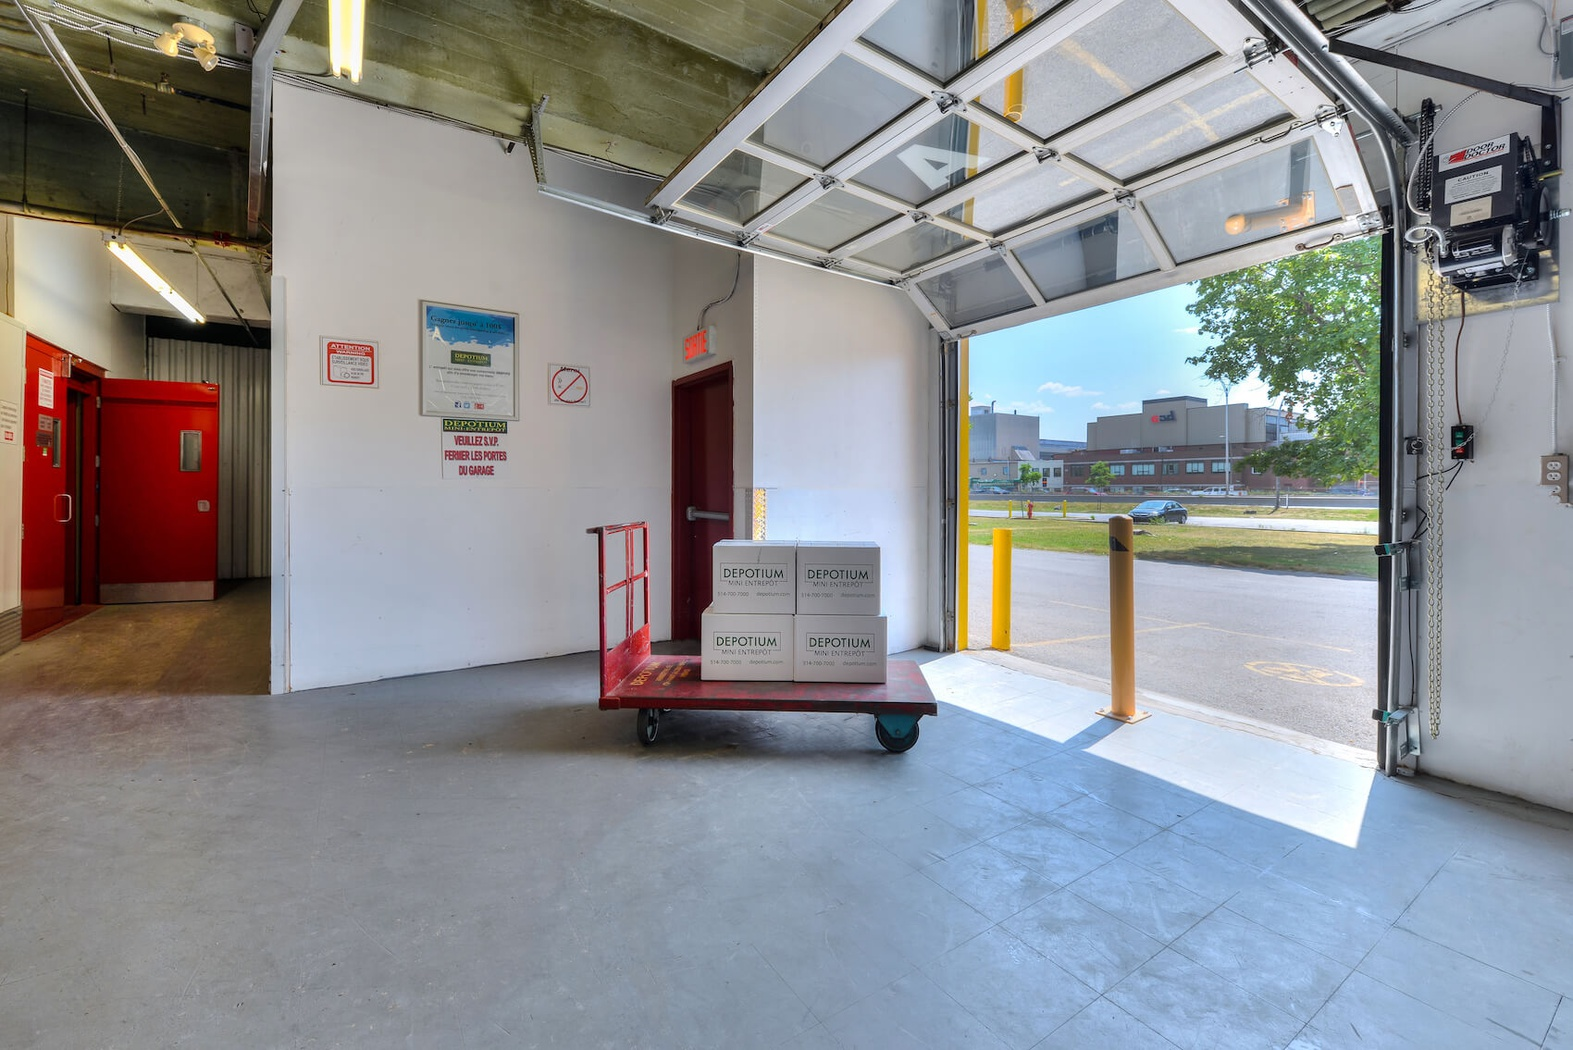 Rent Montreal storage units at 100 Boulevard Montréal-Toronto. We offer a wide-range of affordable self storage units and your first 4 weeks are free!